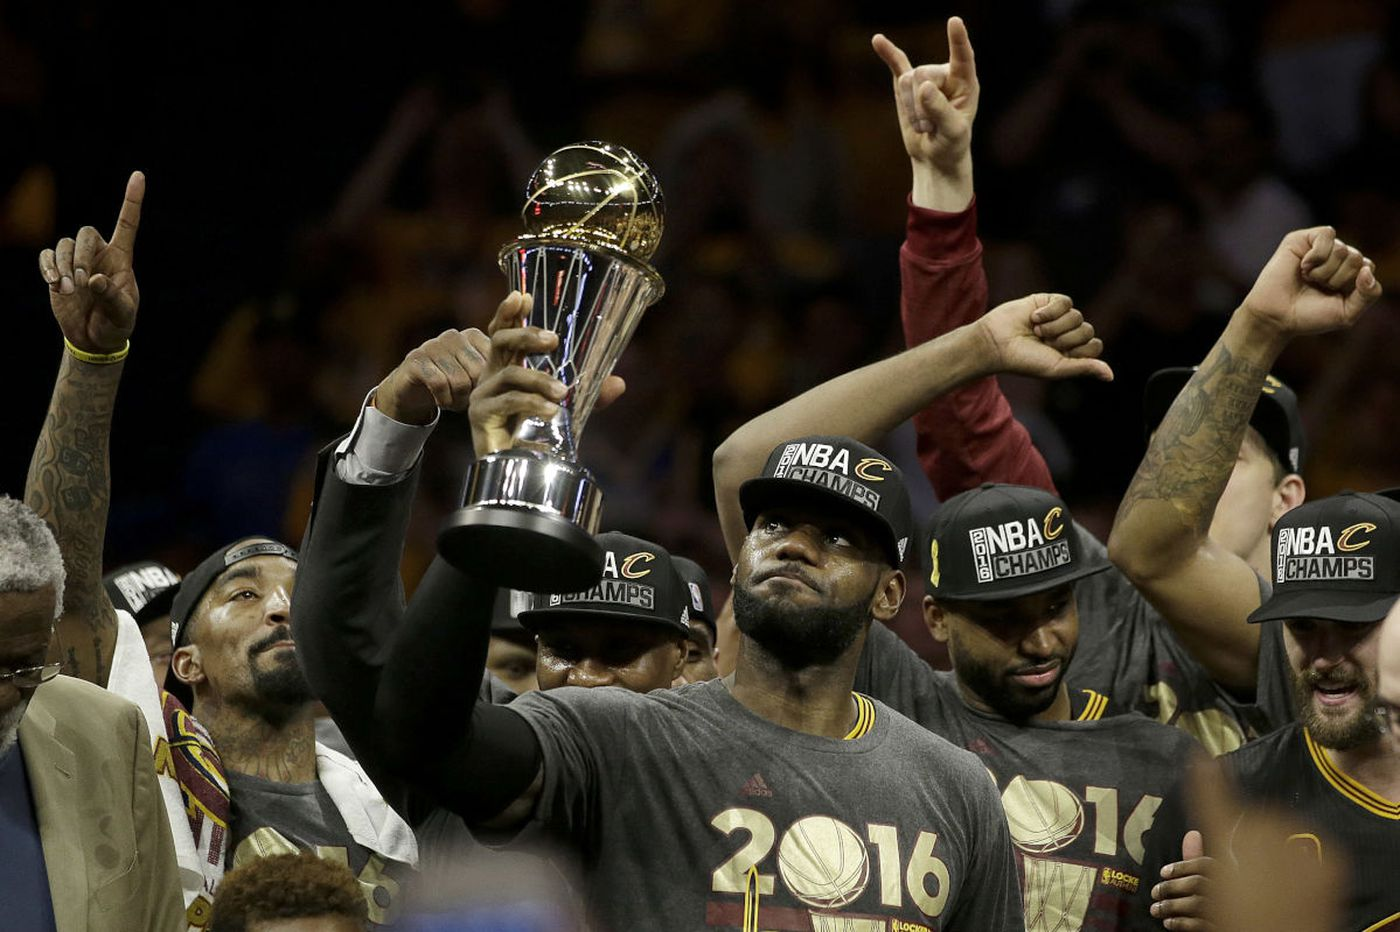 Rendell: Sports trumps real world, if only for a while